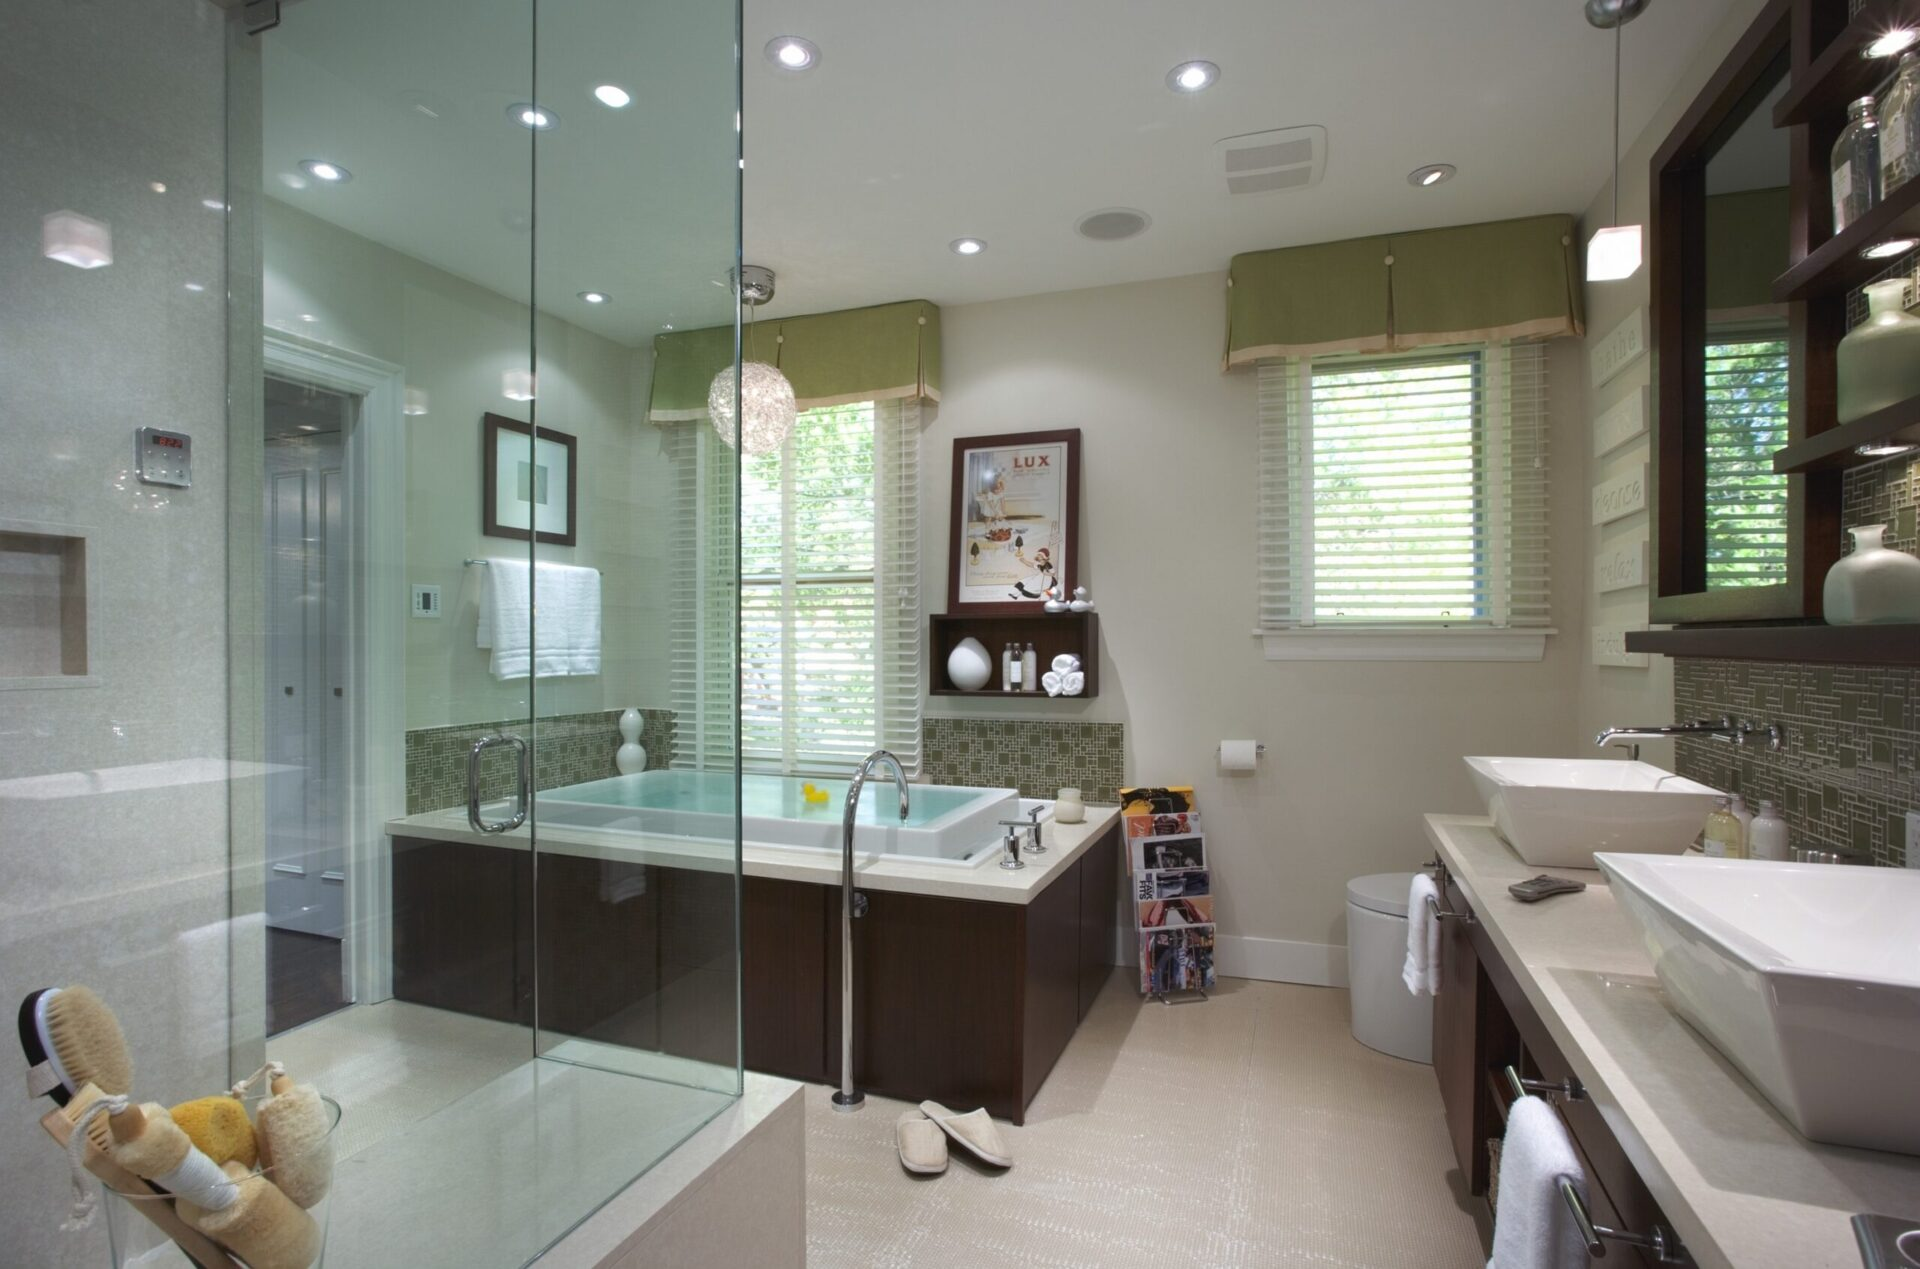 Bathroom Remodel Ideas by Candice Olson